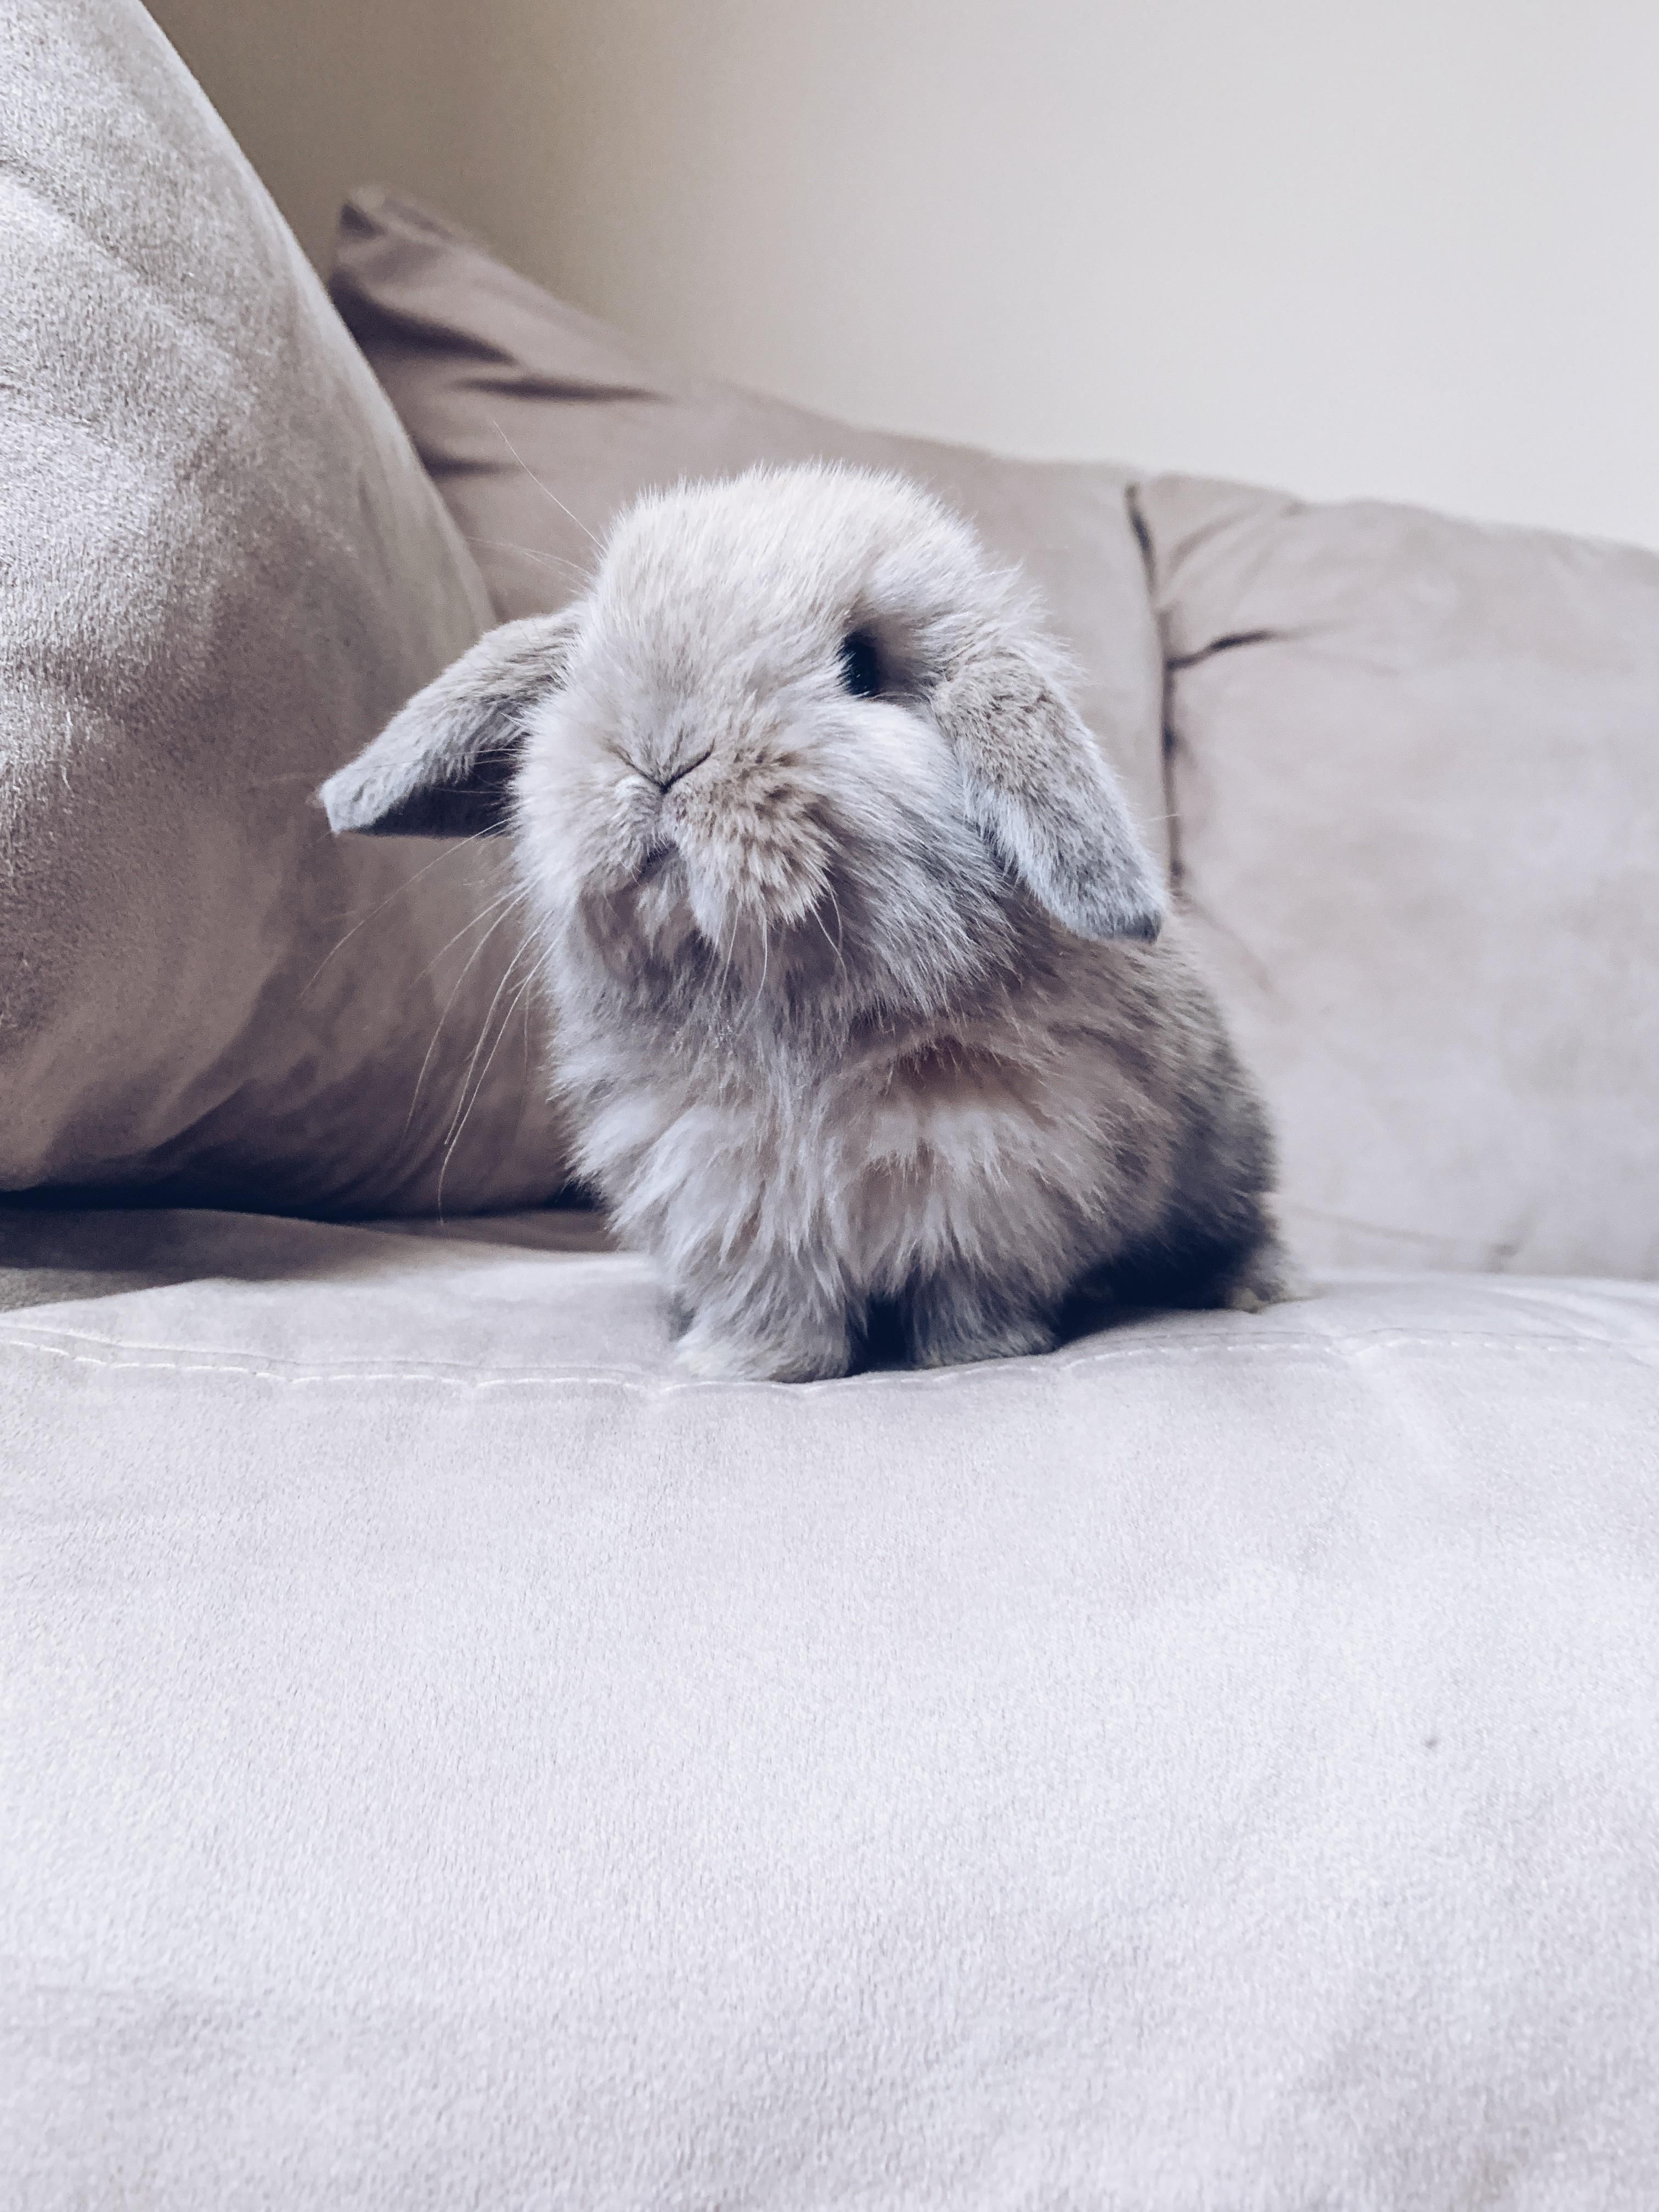 The House Rabbit Guide Cute Animals Cute Hamsters Mini Lop Bunnies